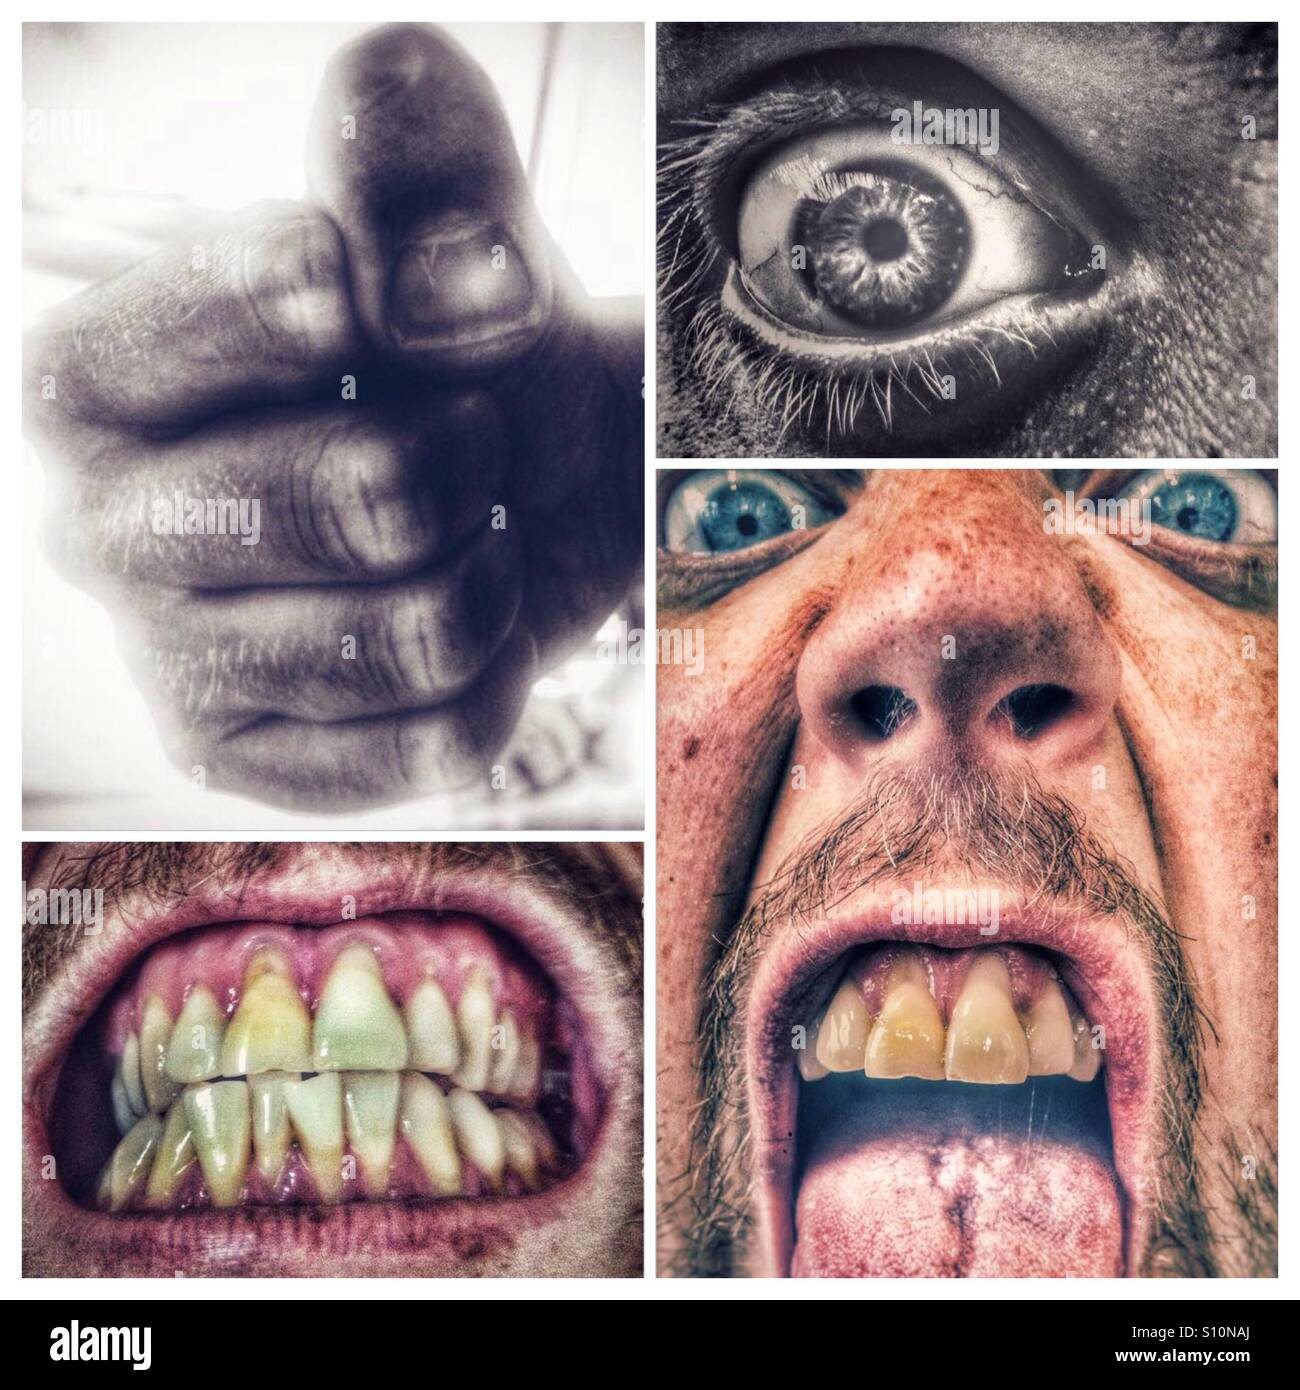 Anger compilation - Stock Image